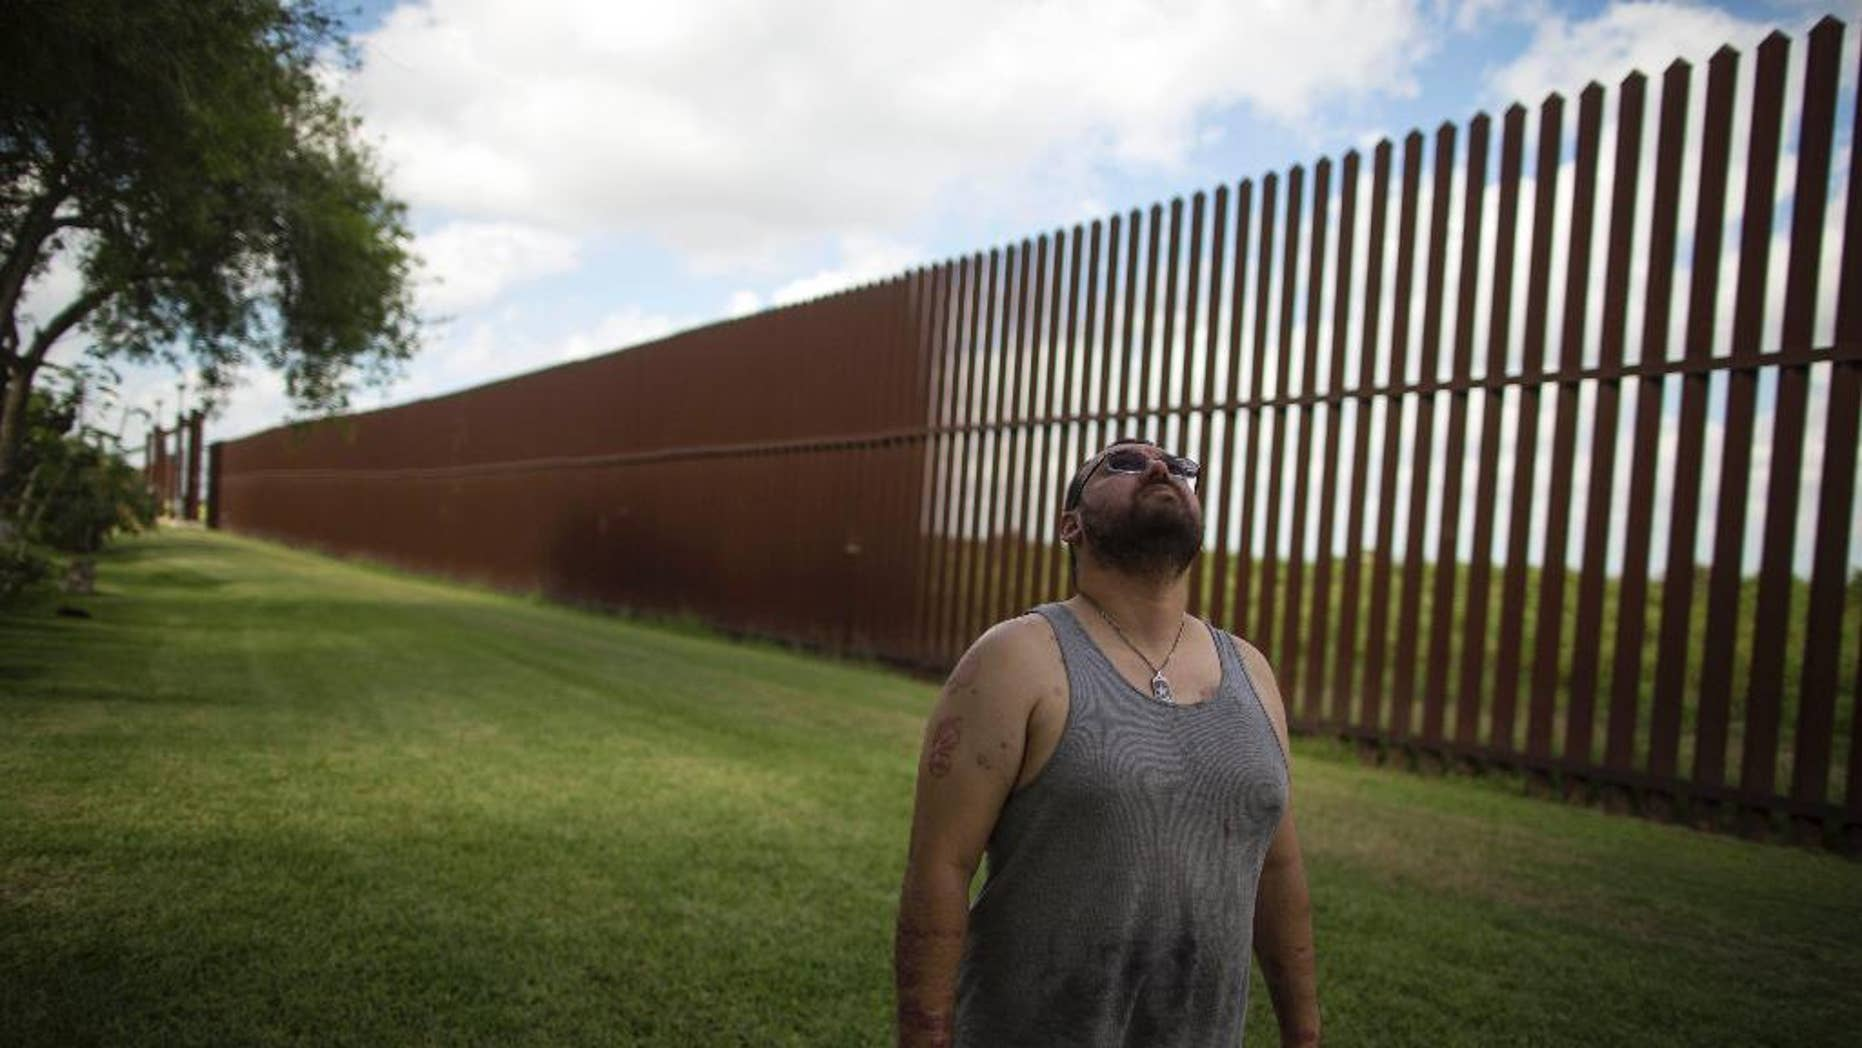 FILE - In this March 22, 2017, file photo, Antonio Reyes of Brownsville, Texas, stands by the U.S.-Mexico border fence near his home. (AP Photo/Rodrigo Abd, File)